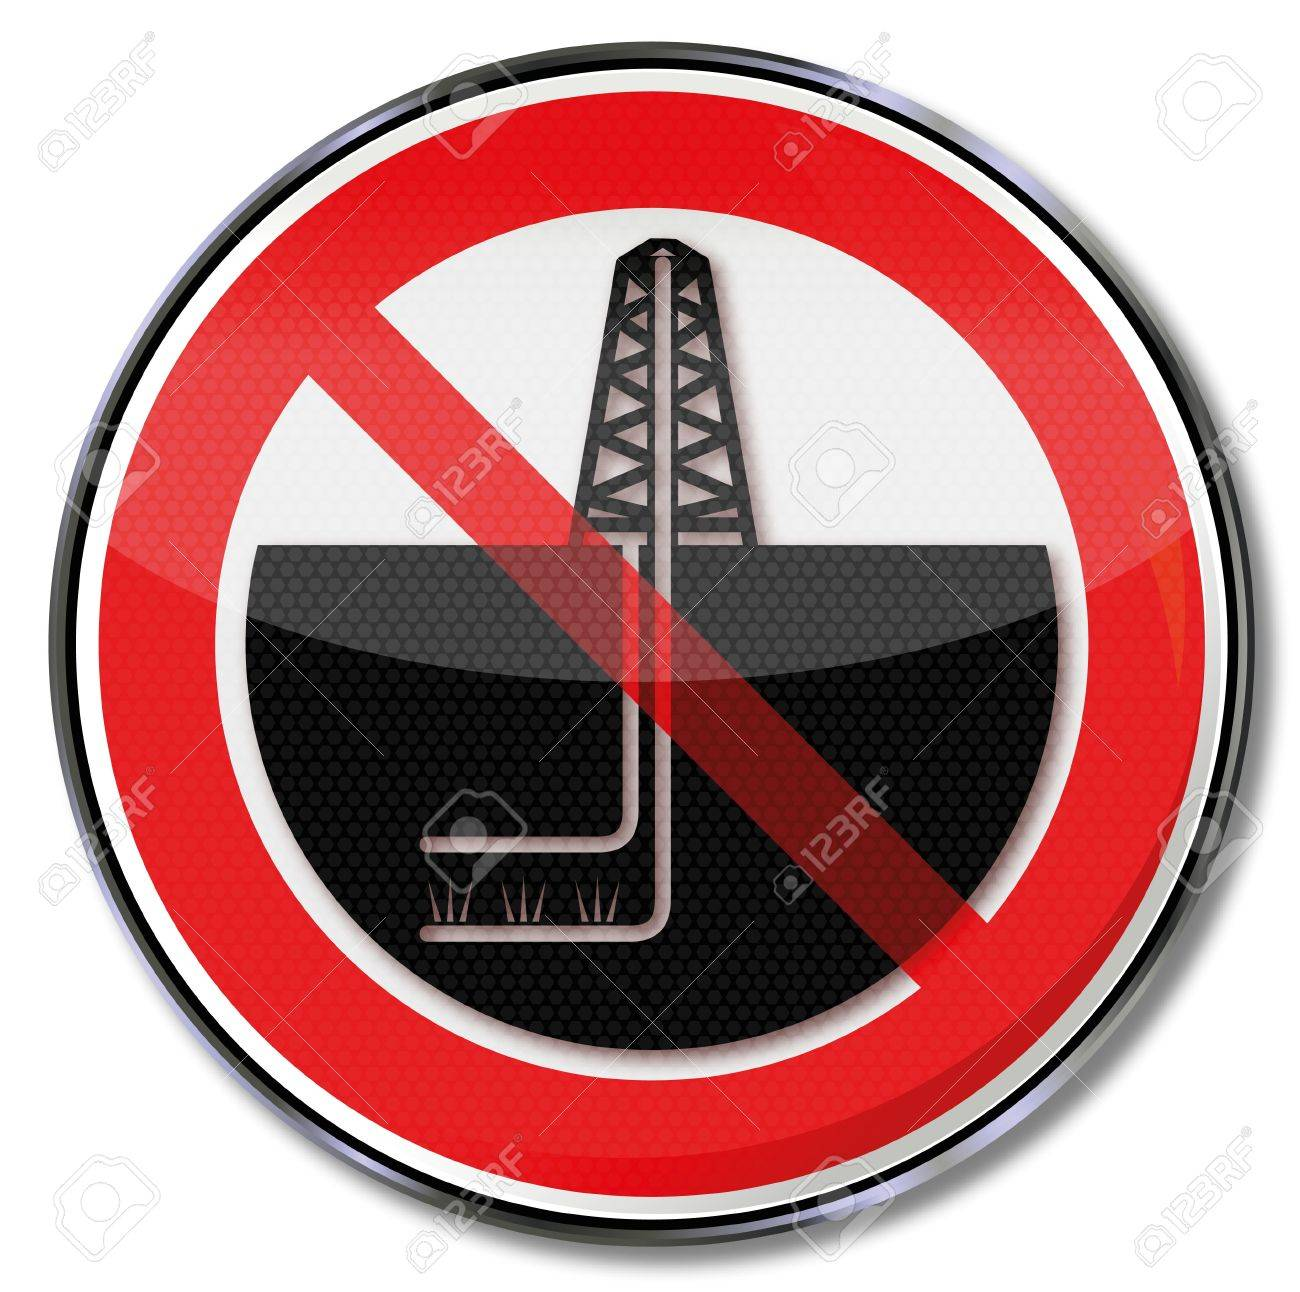 Prohibition sign for rigs and fracking Stock Vector - 21919137